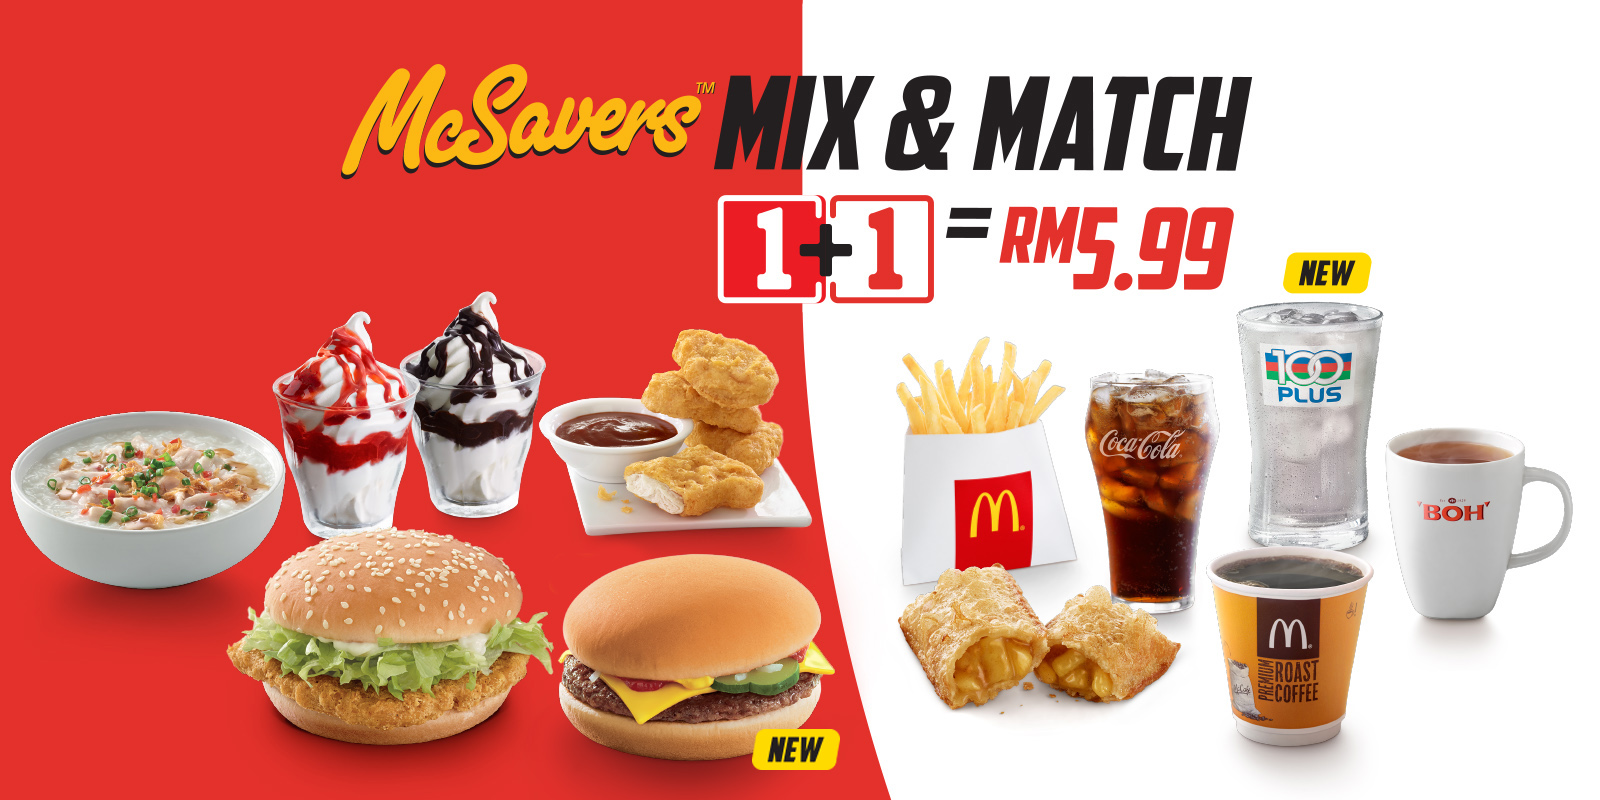 Mcdonald S Mcsavers Mix Match Rm5 99 All Day Except 4am 11am